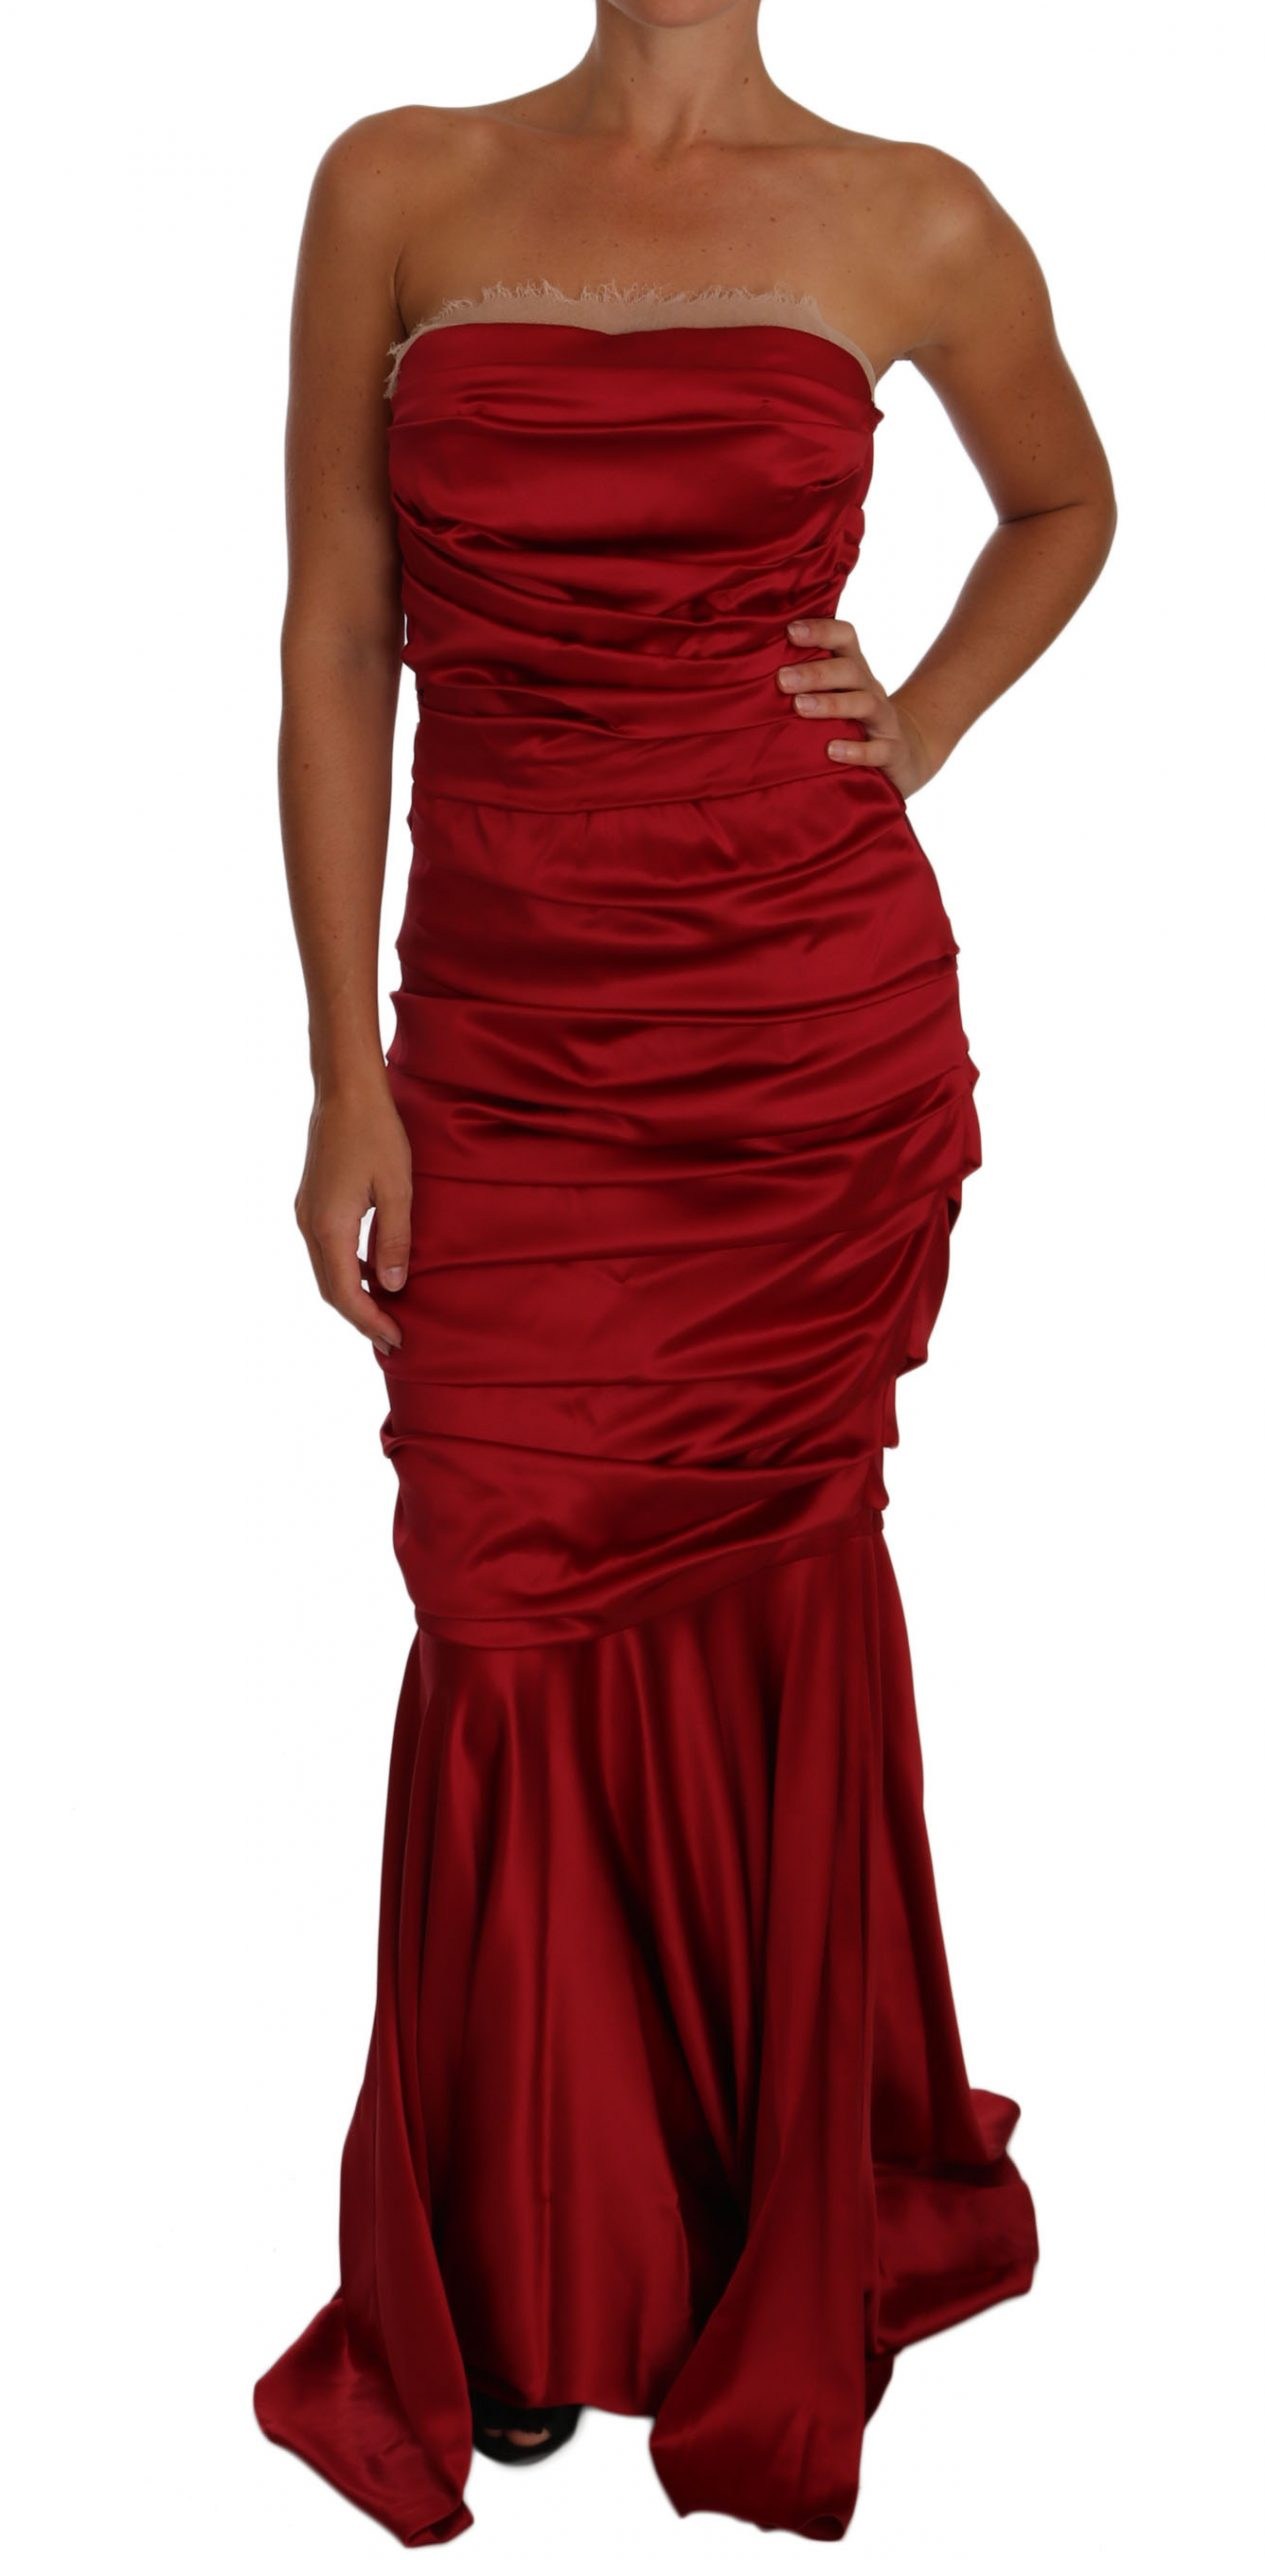 Dolce & Gabbana Women's Ruched Satin Meraid Dress Red DR1495 - IT40|S